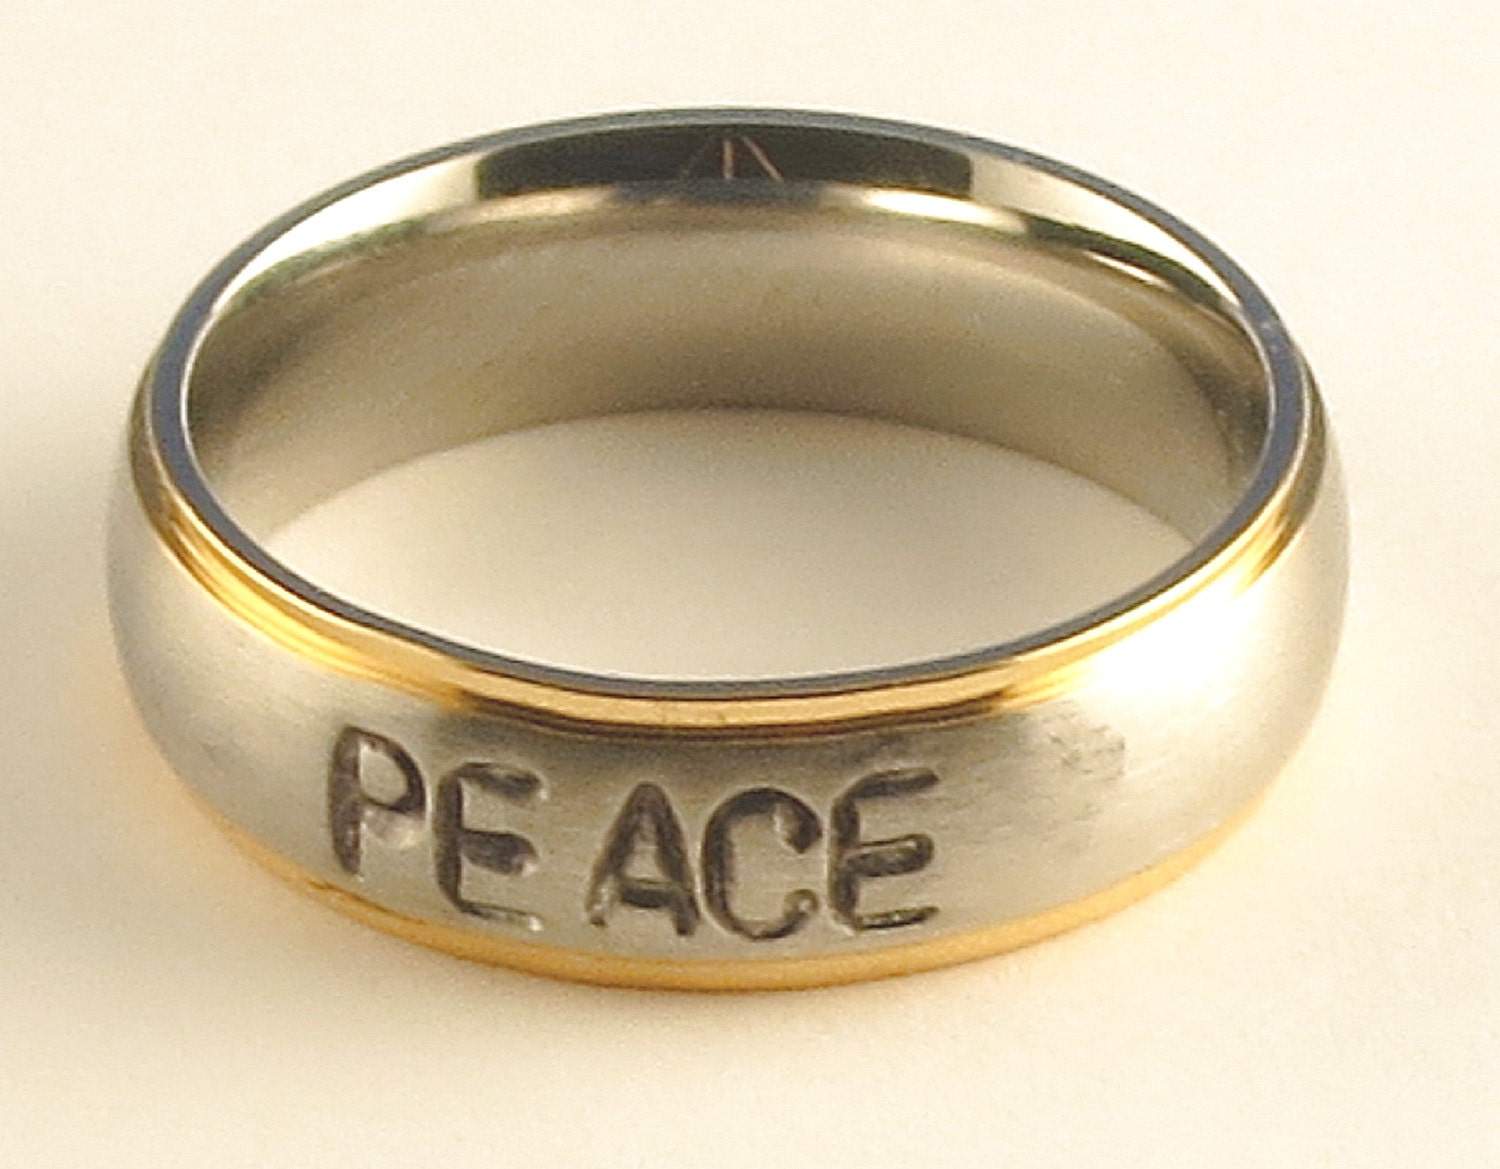 PEACE Stainless Steel Gold Tone Edge Comfort Fit Name Ring 6mm